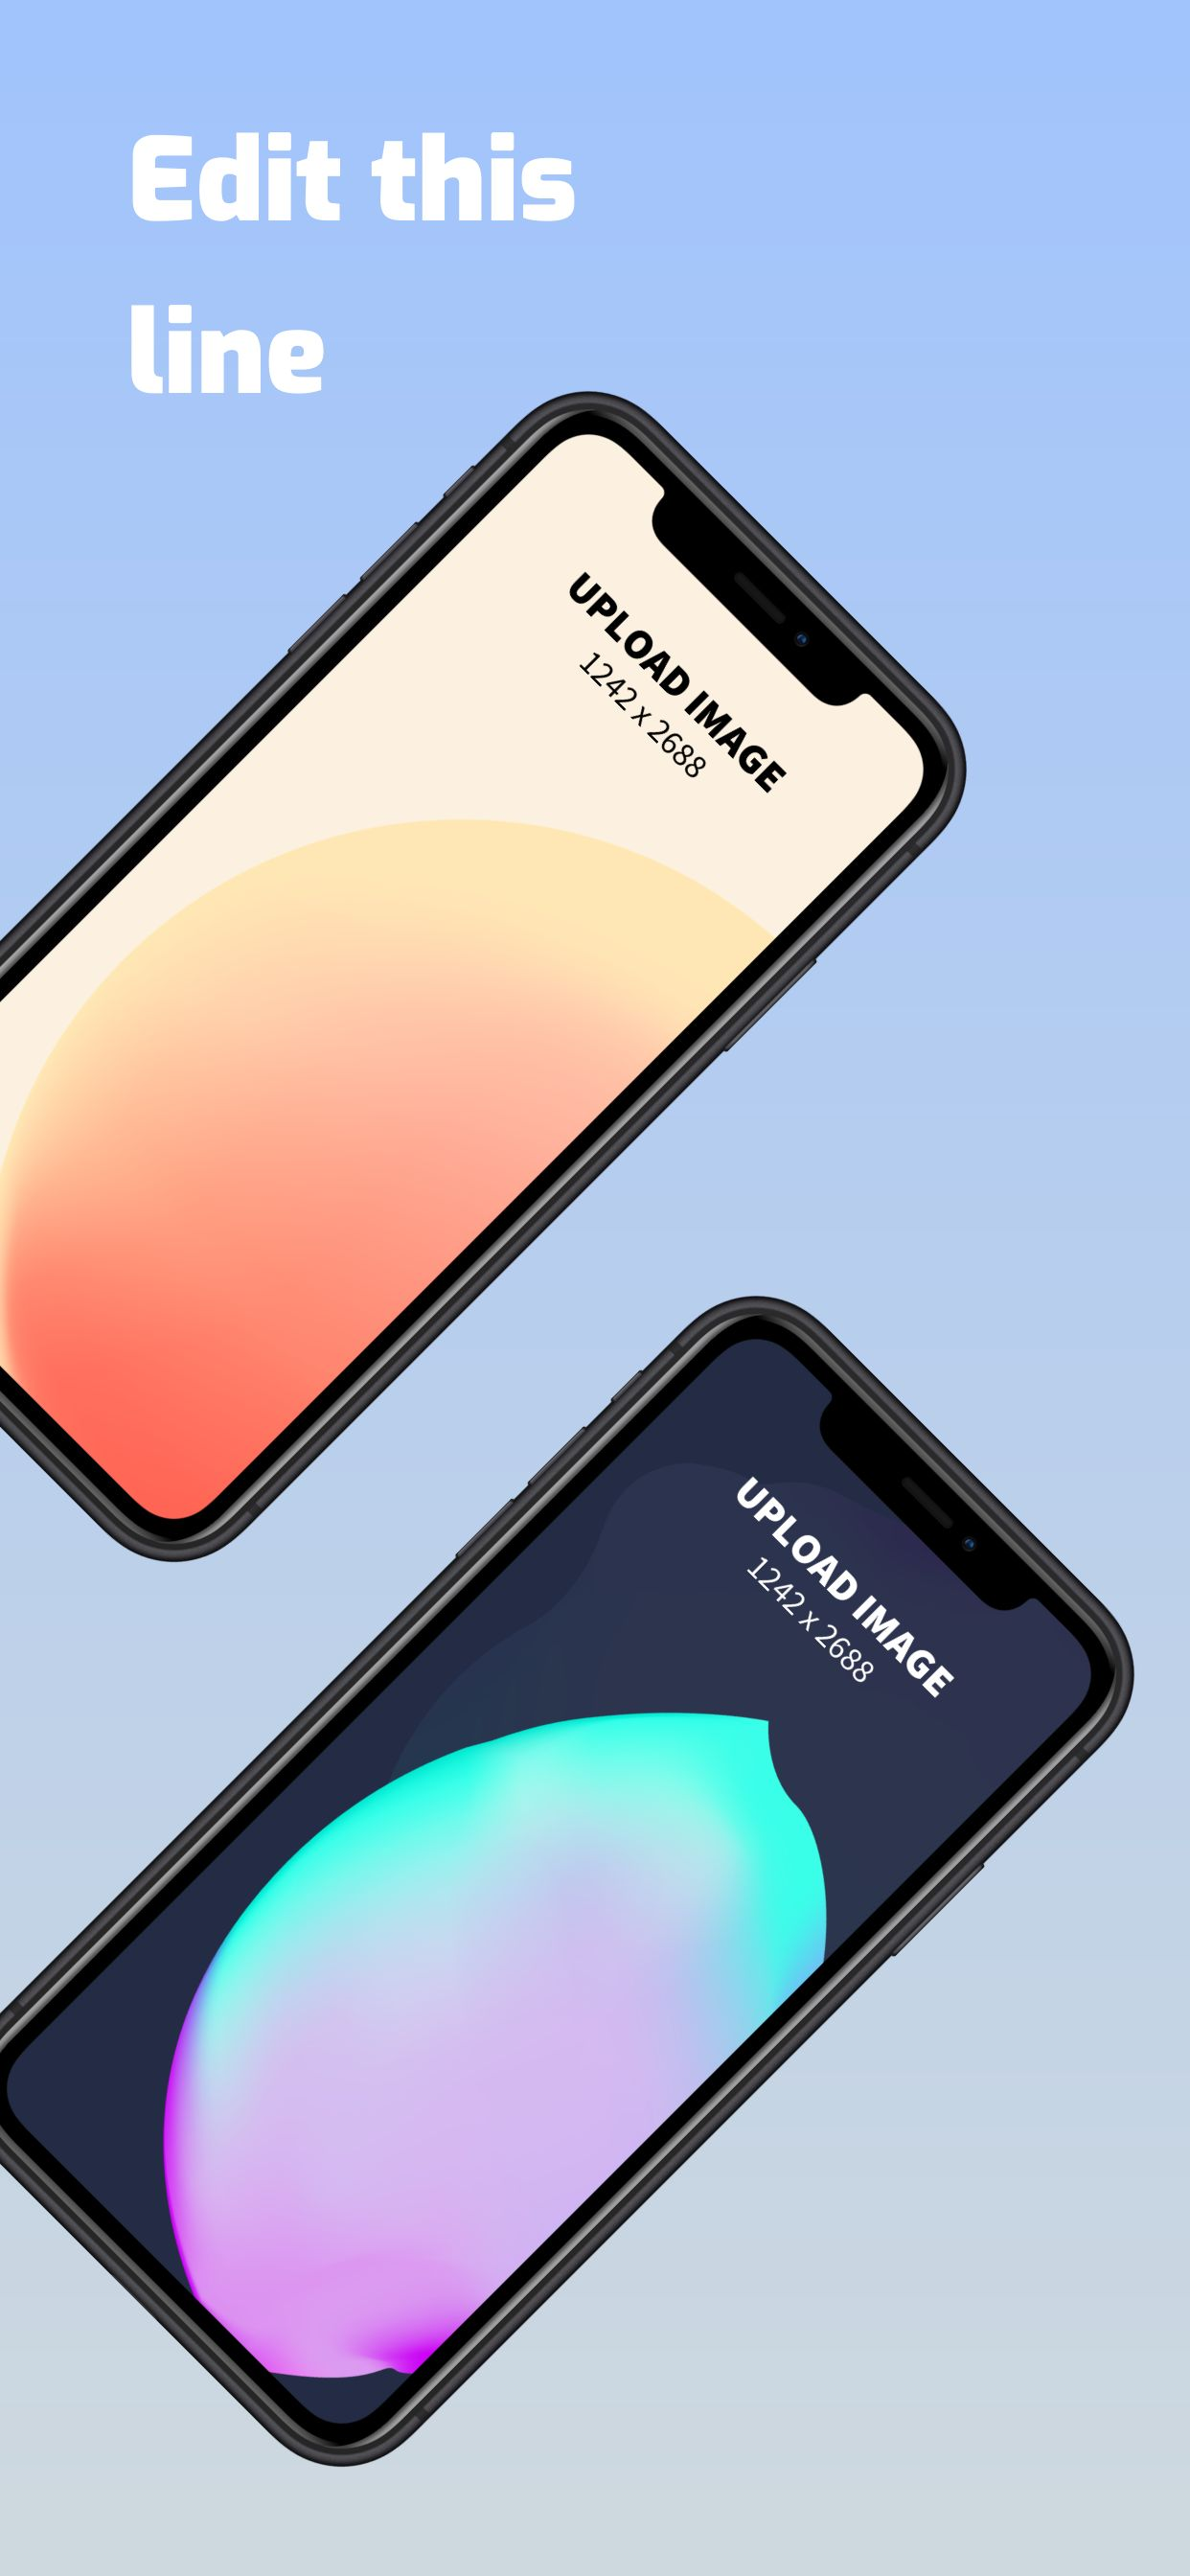 iPhone XS Max Screenshot 9 template. Quickly edit text, colors, images, and more for free.